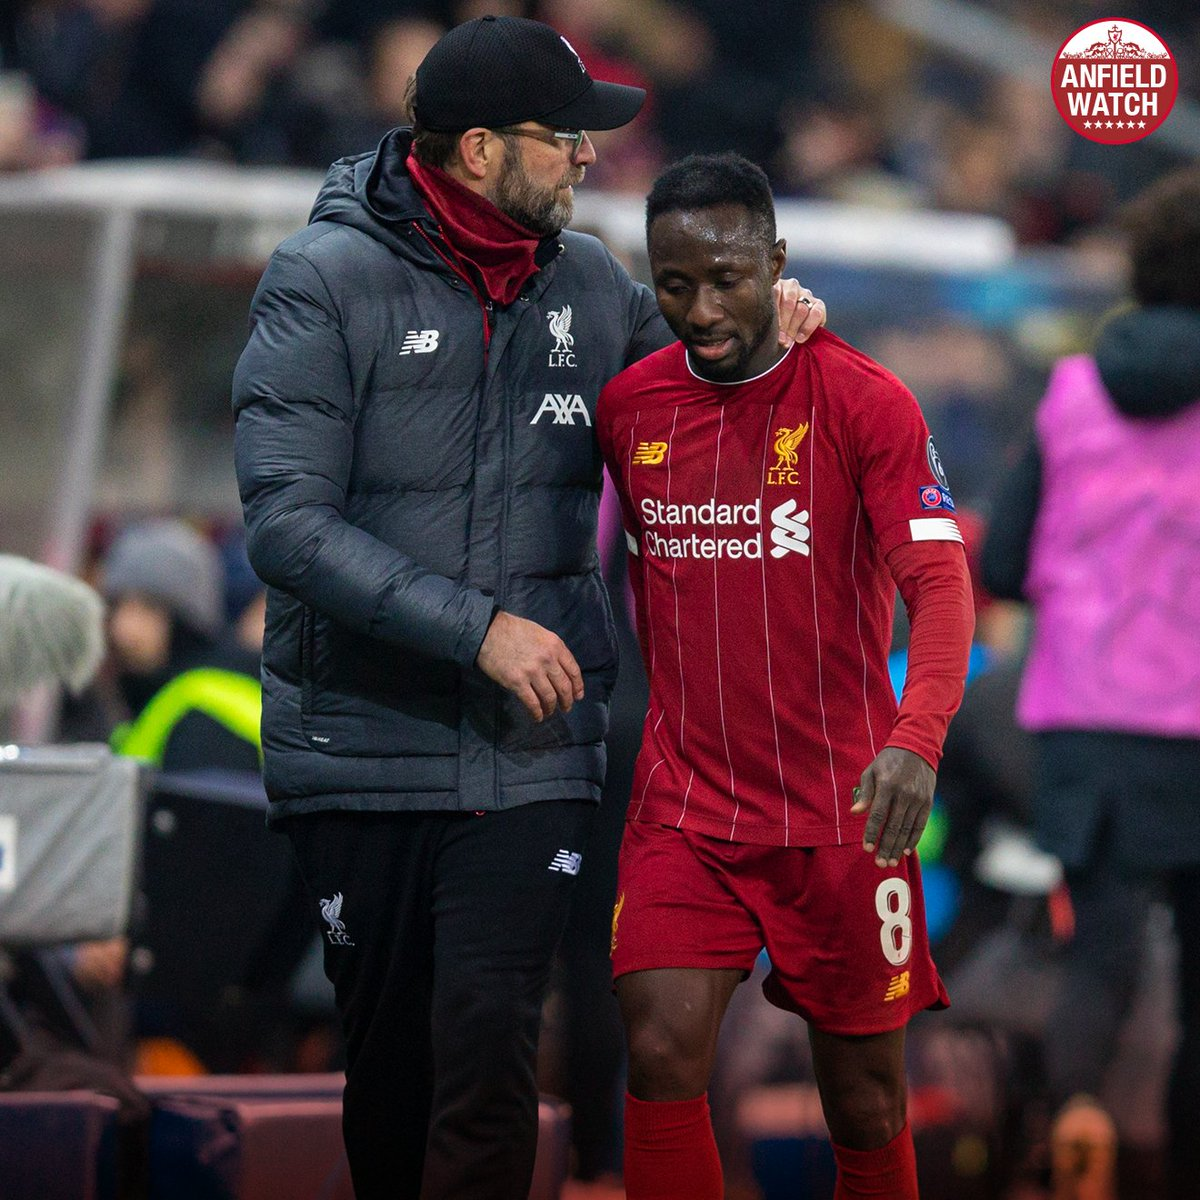 Naby Keita is back at Melwood after receiving a negative COVID-19 test result and being cleared to begin training and playing again, with Jurgen Klopp hopeful the No.8 can feature in Amsterdam. #awlfc [lfc]